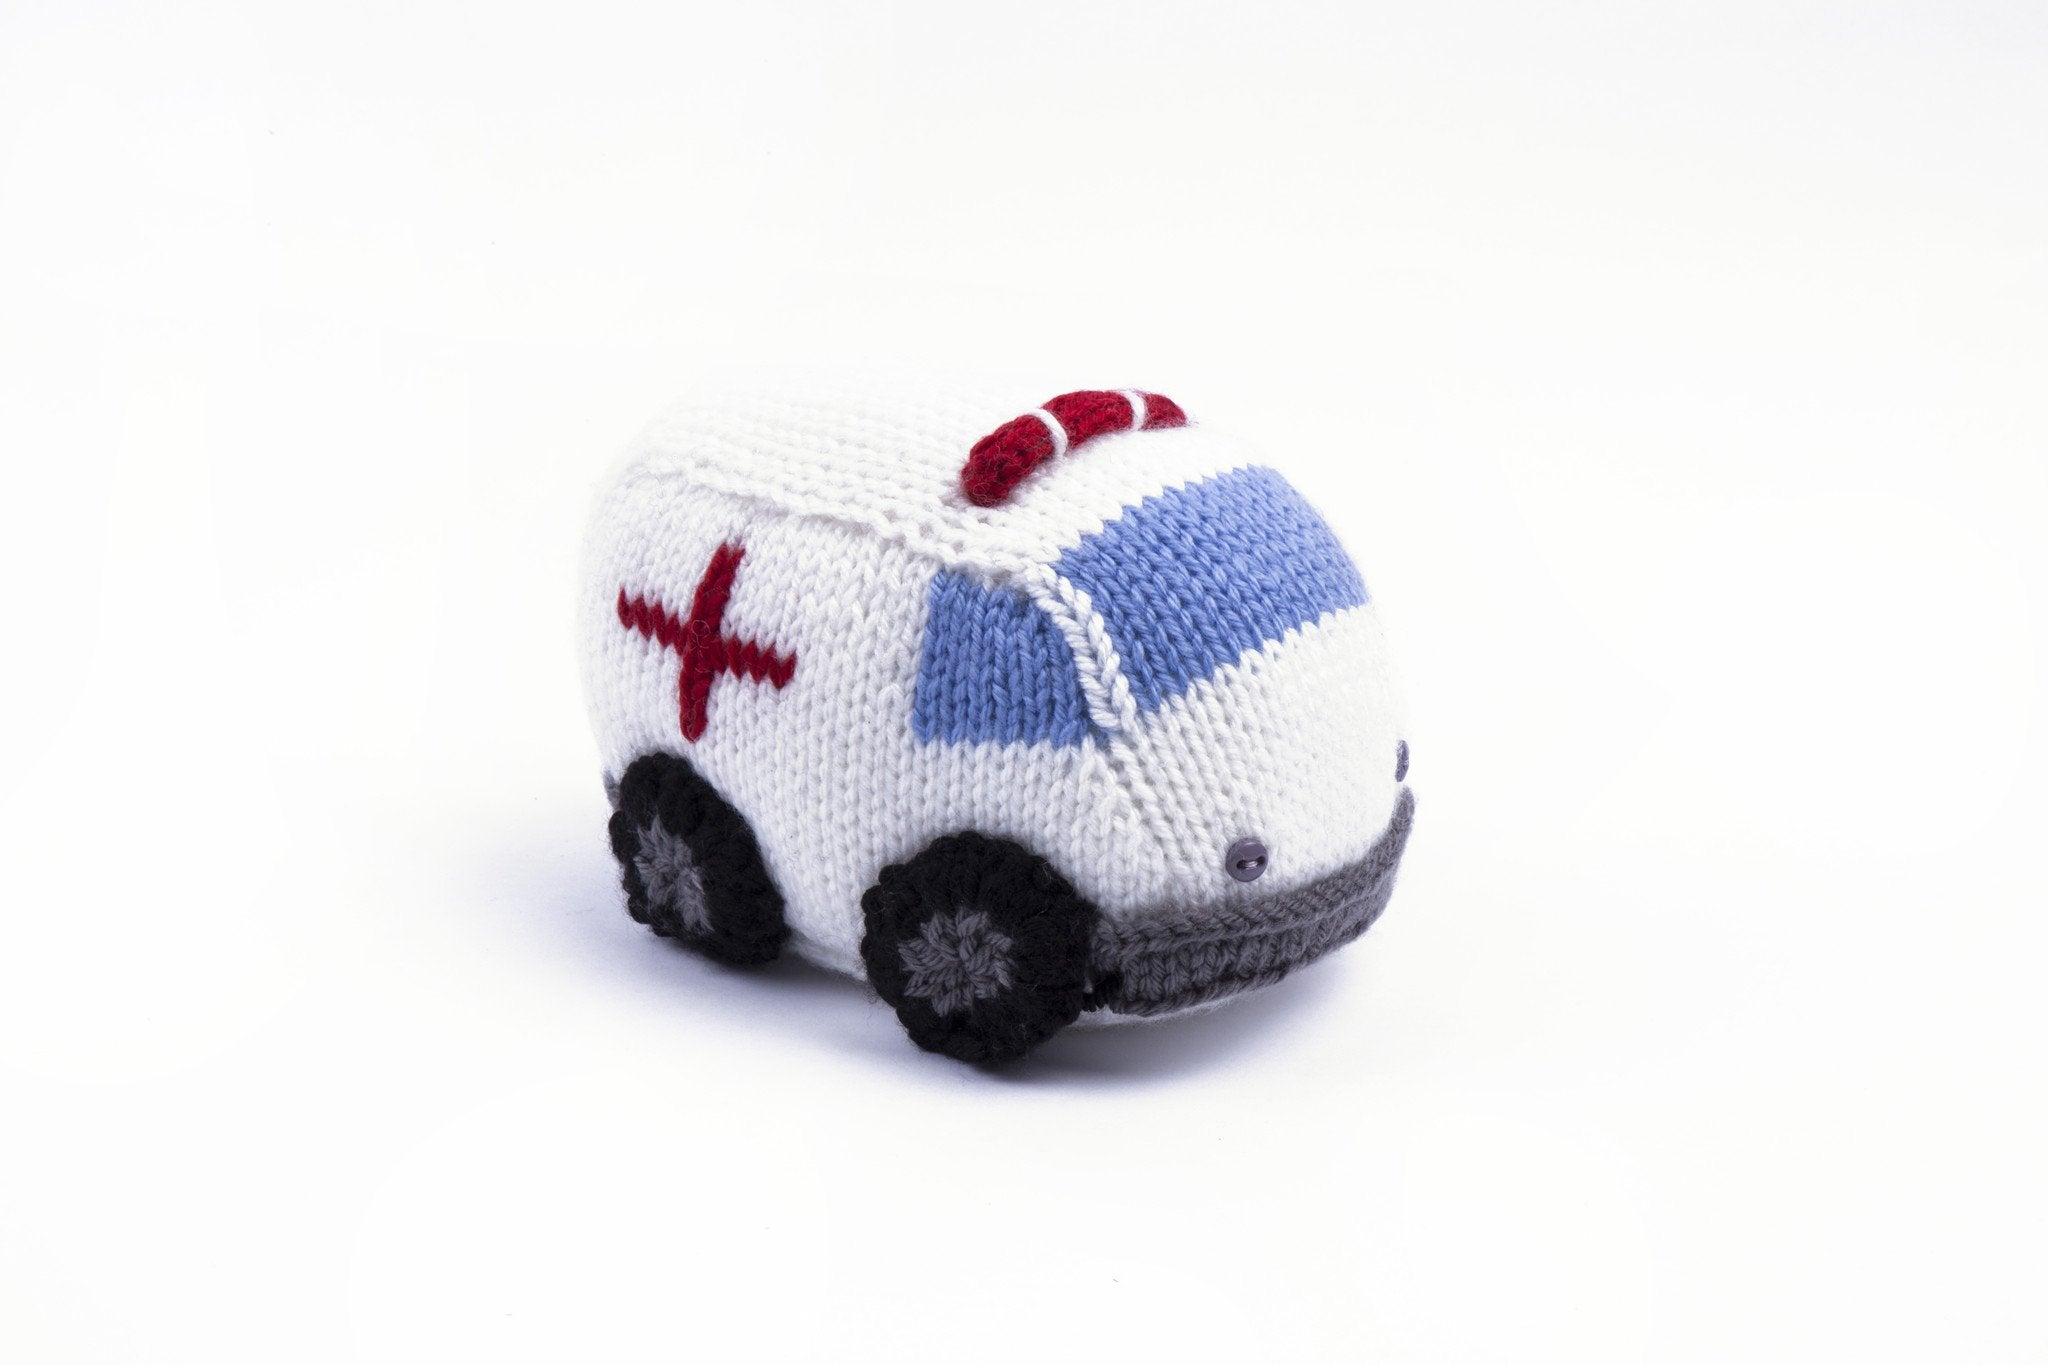 Buy Deramores Vehicle Playset Knitting Kit in Studio DK